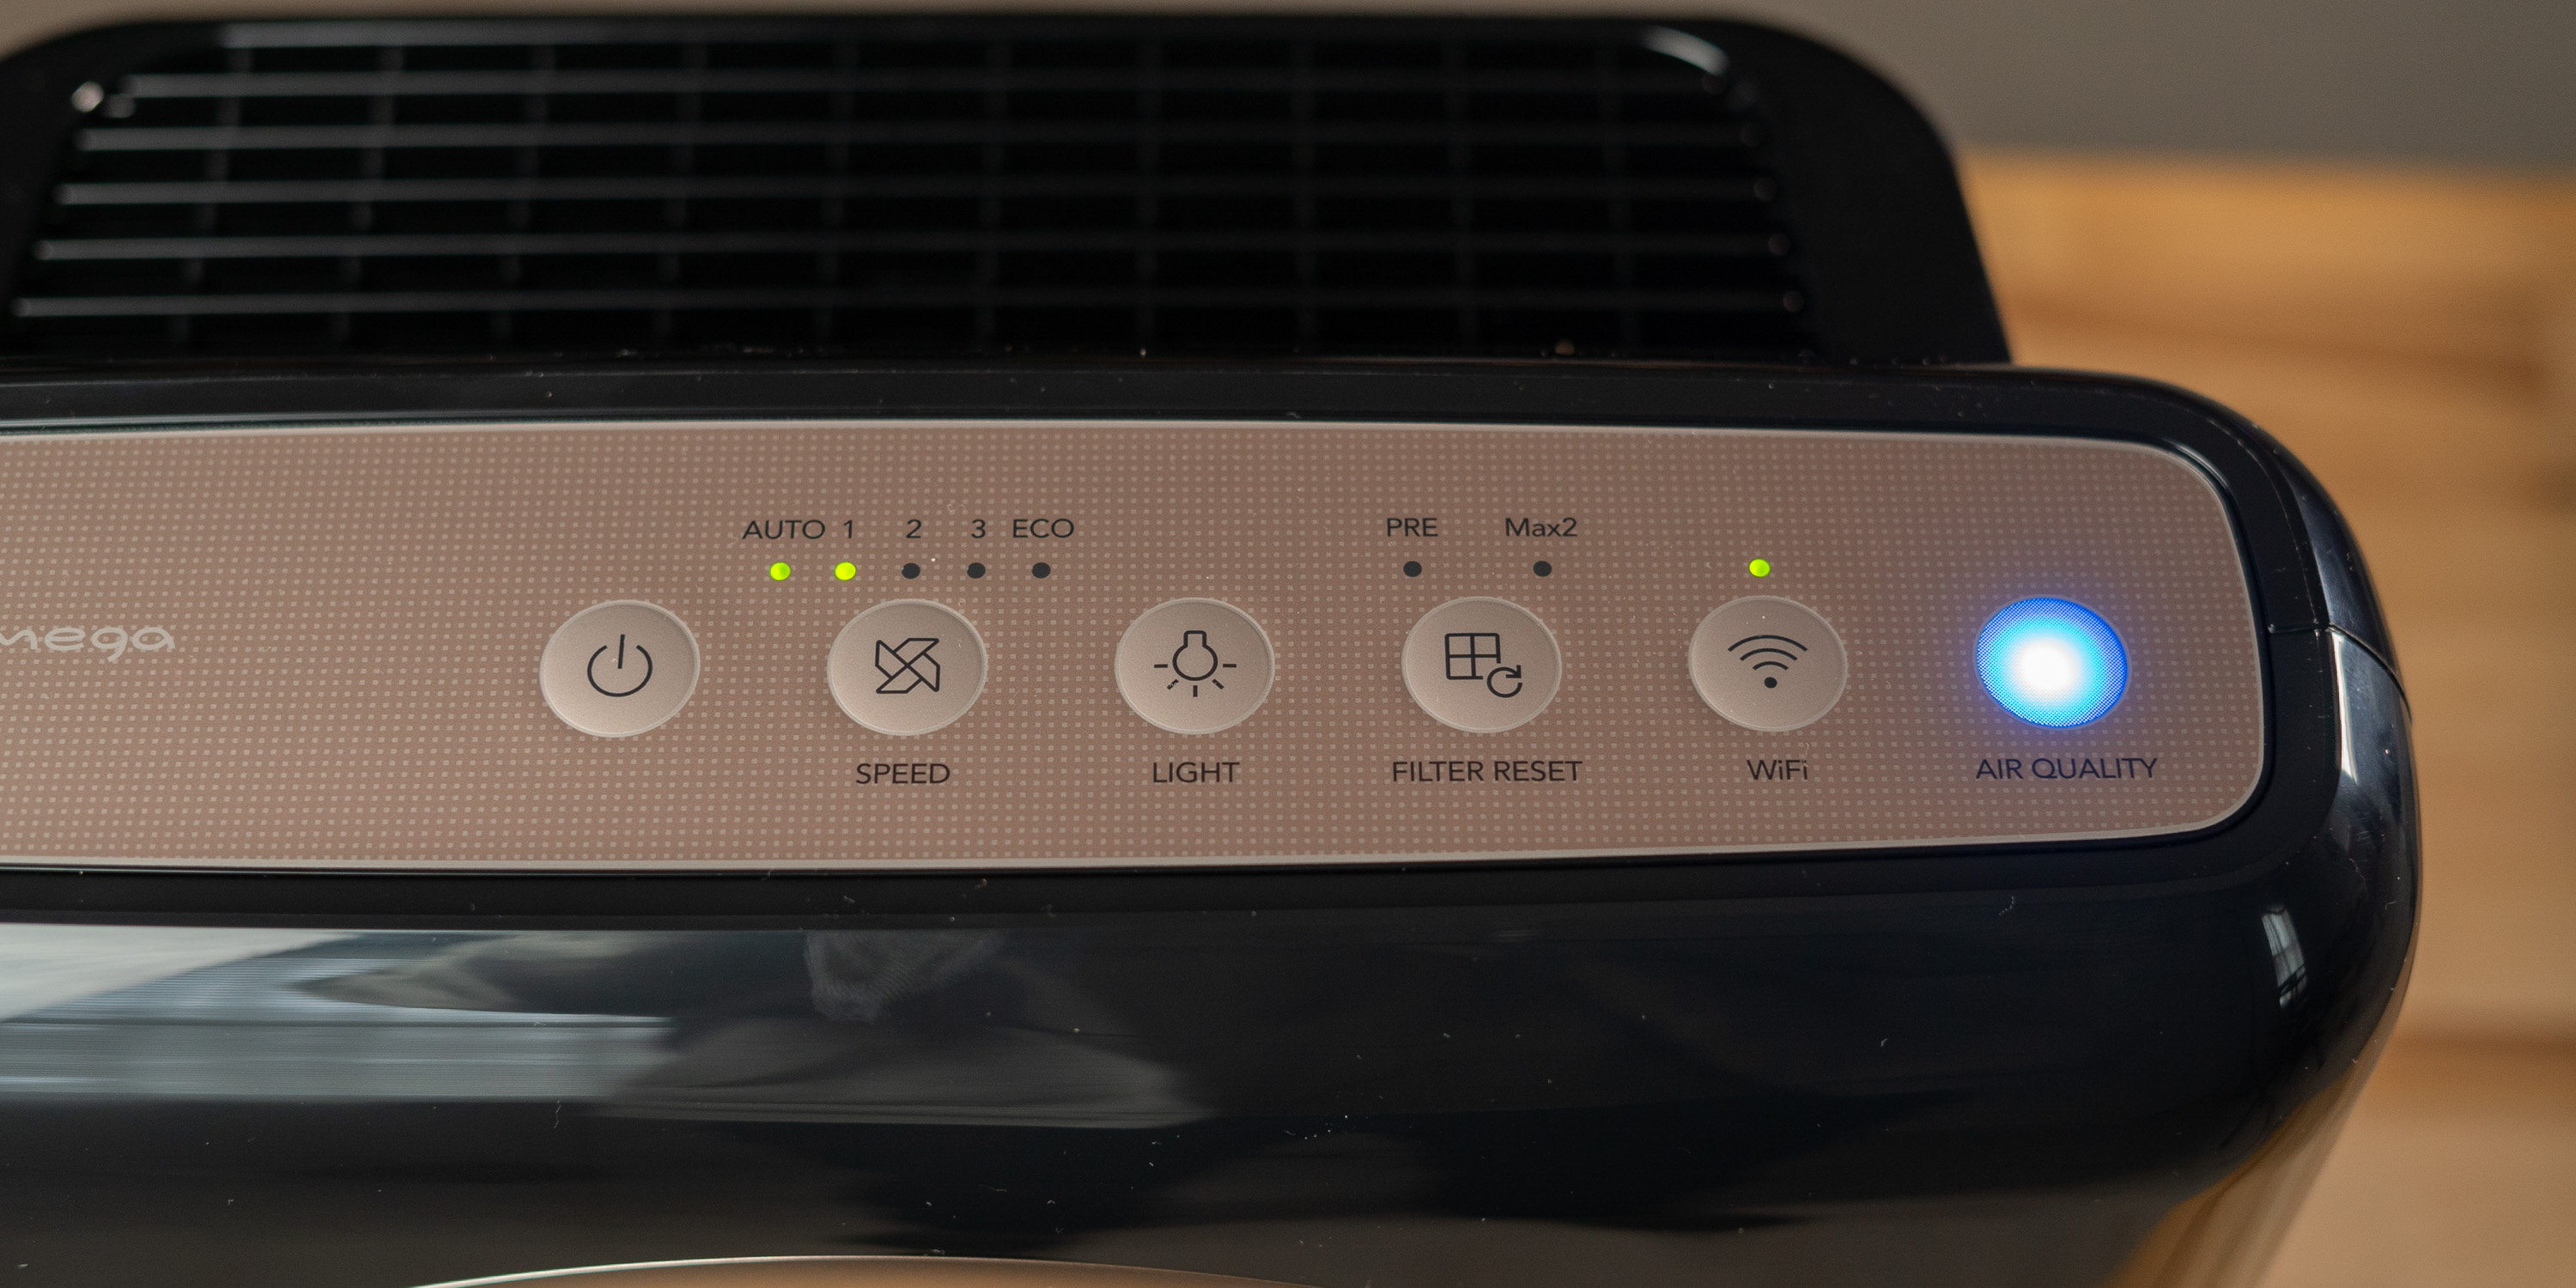 Control panel on the Coway Airmega Smart Air Purifier